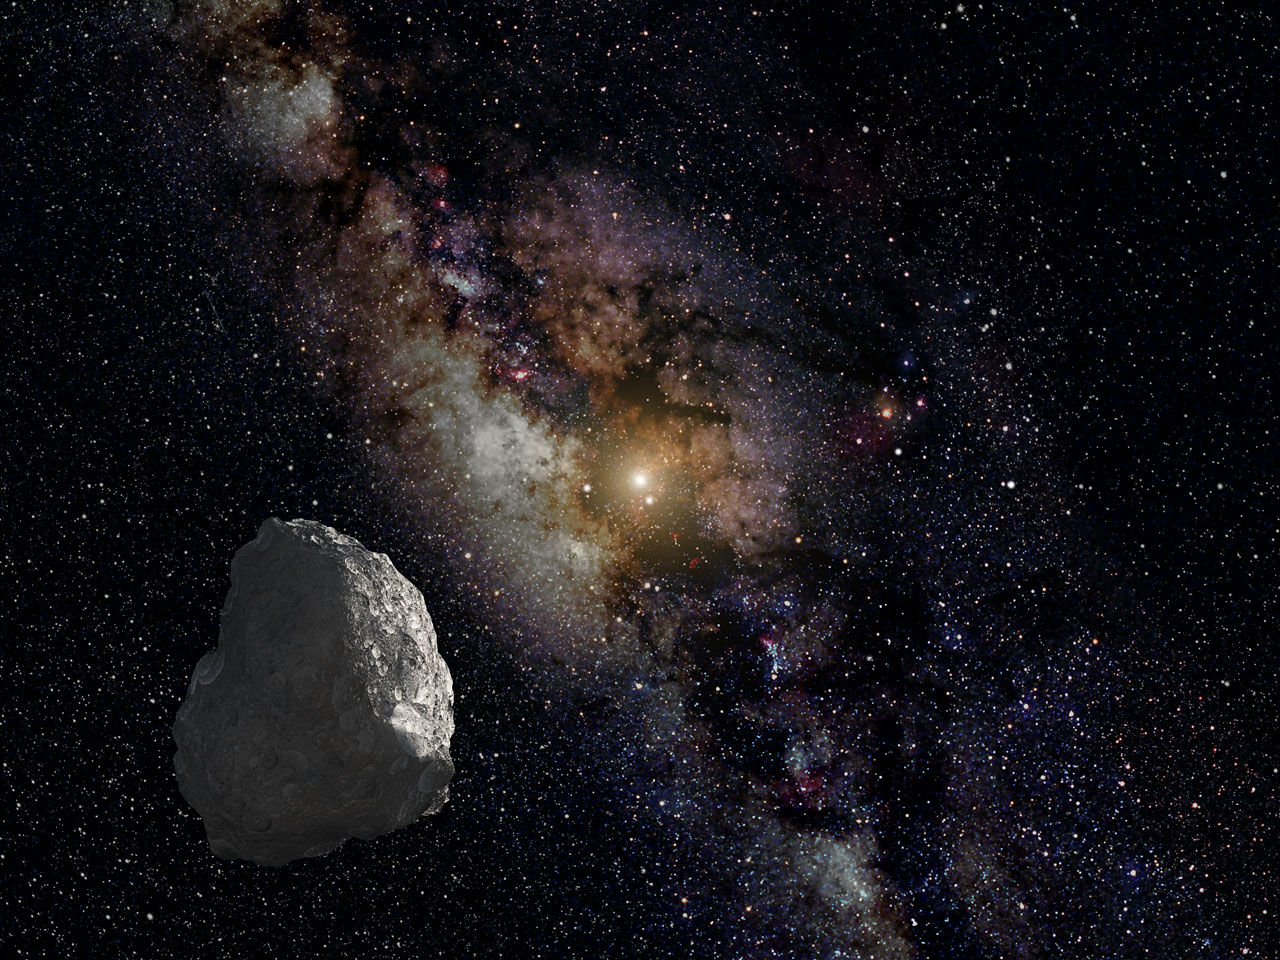 An artist's impression of a Kuiper Belt object, located on the outer rim of our Solar System, where Niku was discovered. Credit: NASA, ESA, and G. Bacon (STScI)